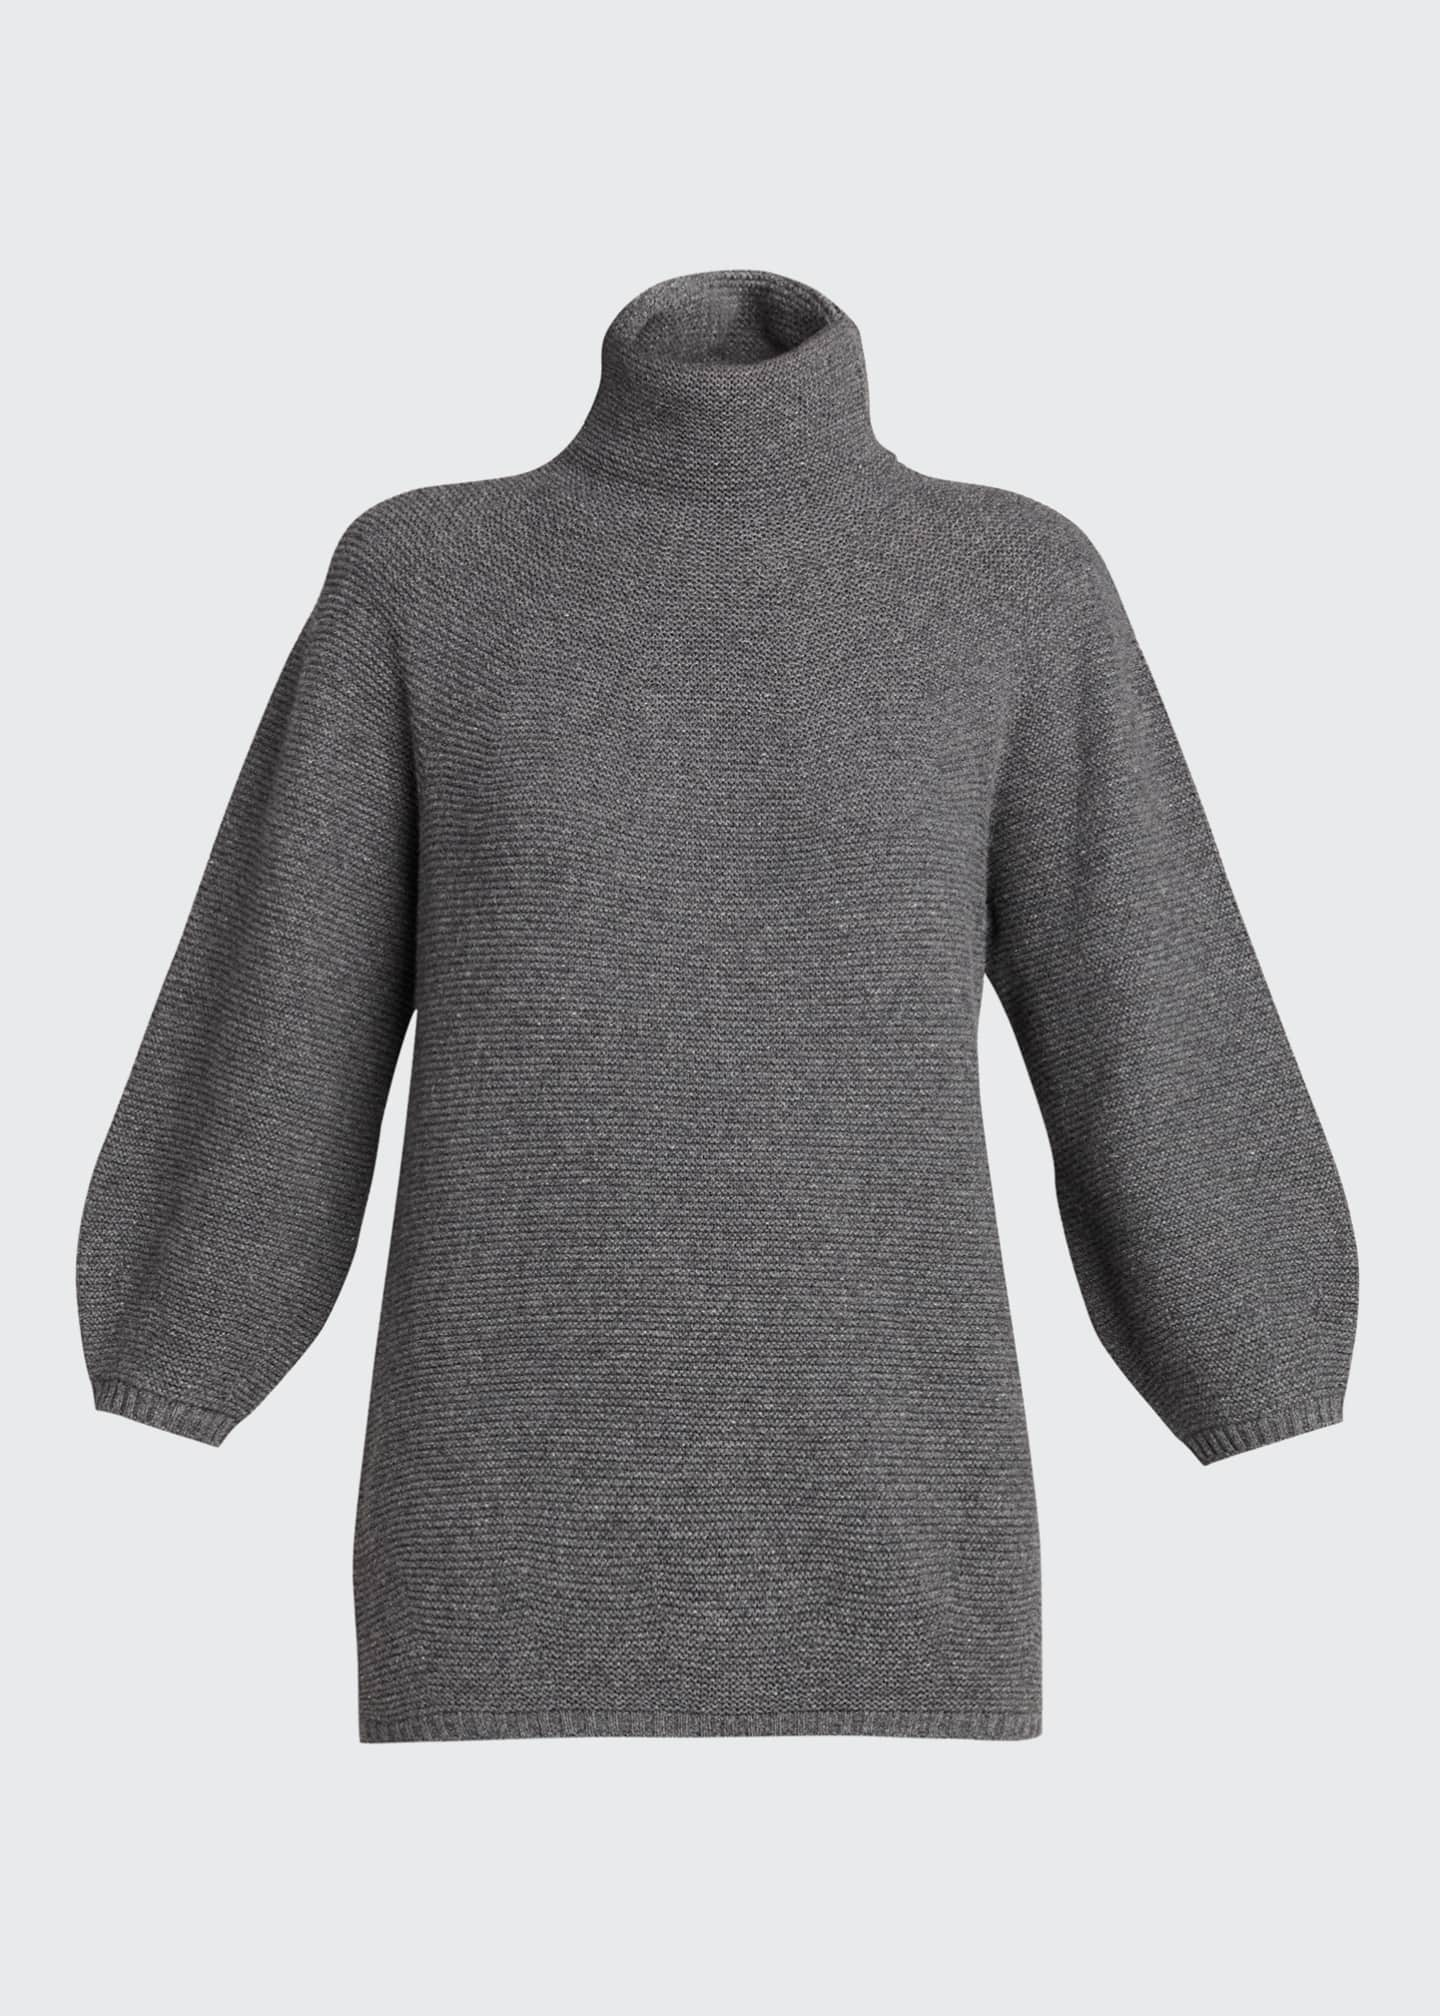 Image 5 of 5: Etrusco Wool-Cashmere High-Neck Sweater